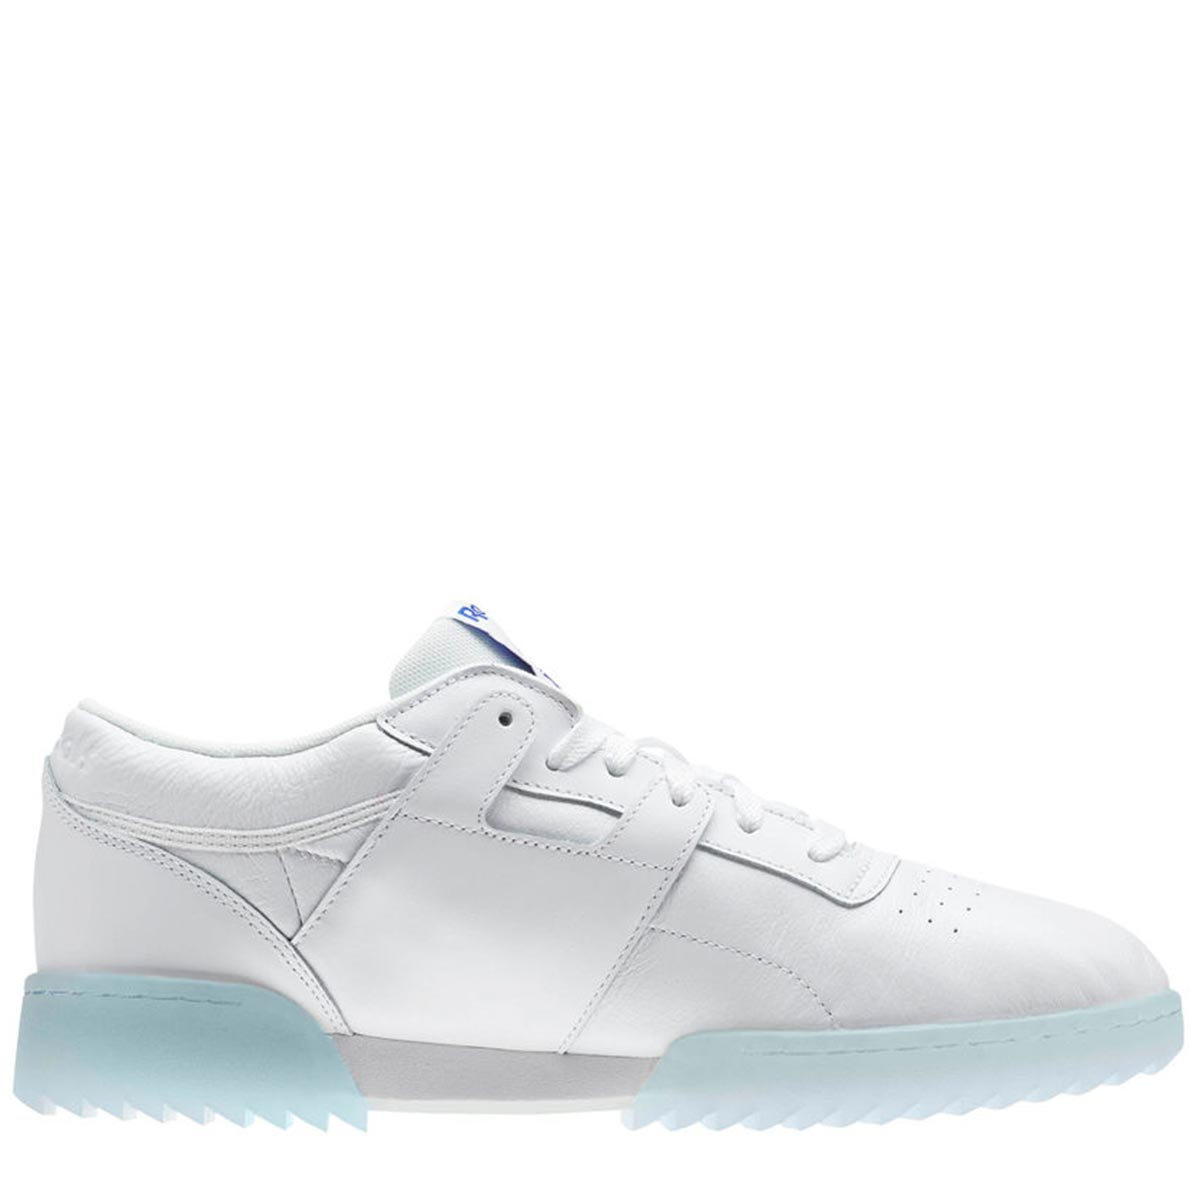 0b28ce5c35d Reebok Workout Clean Ripple Ice - White - Cool Js Online